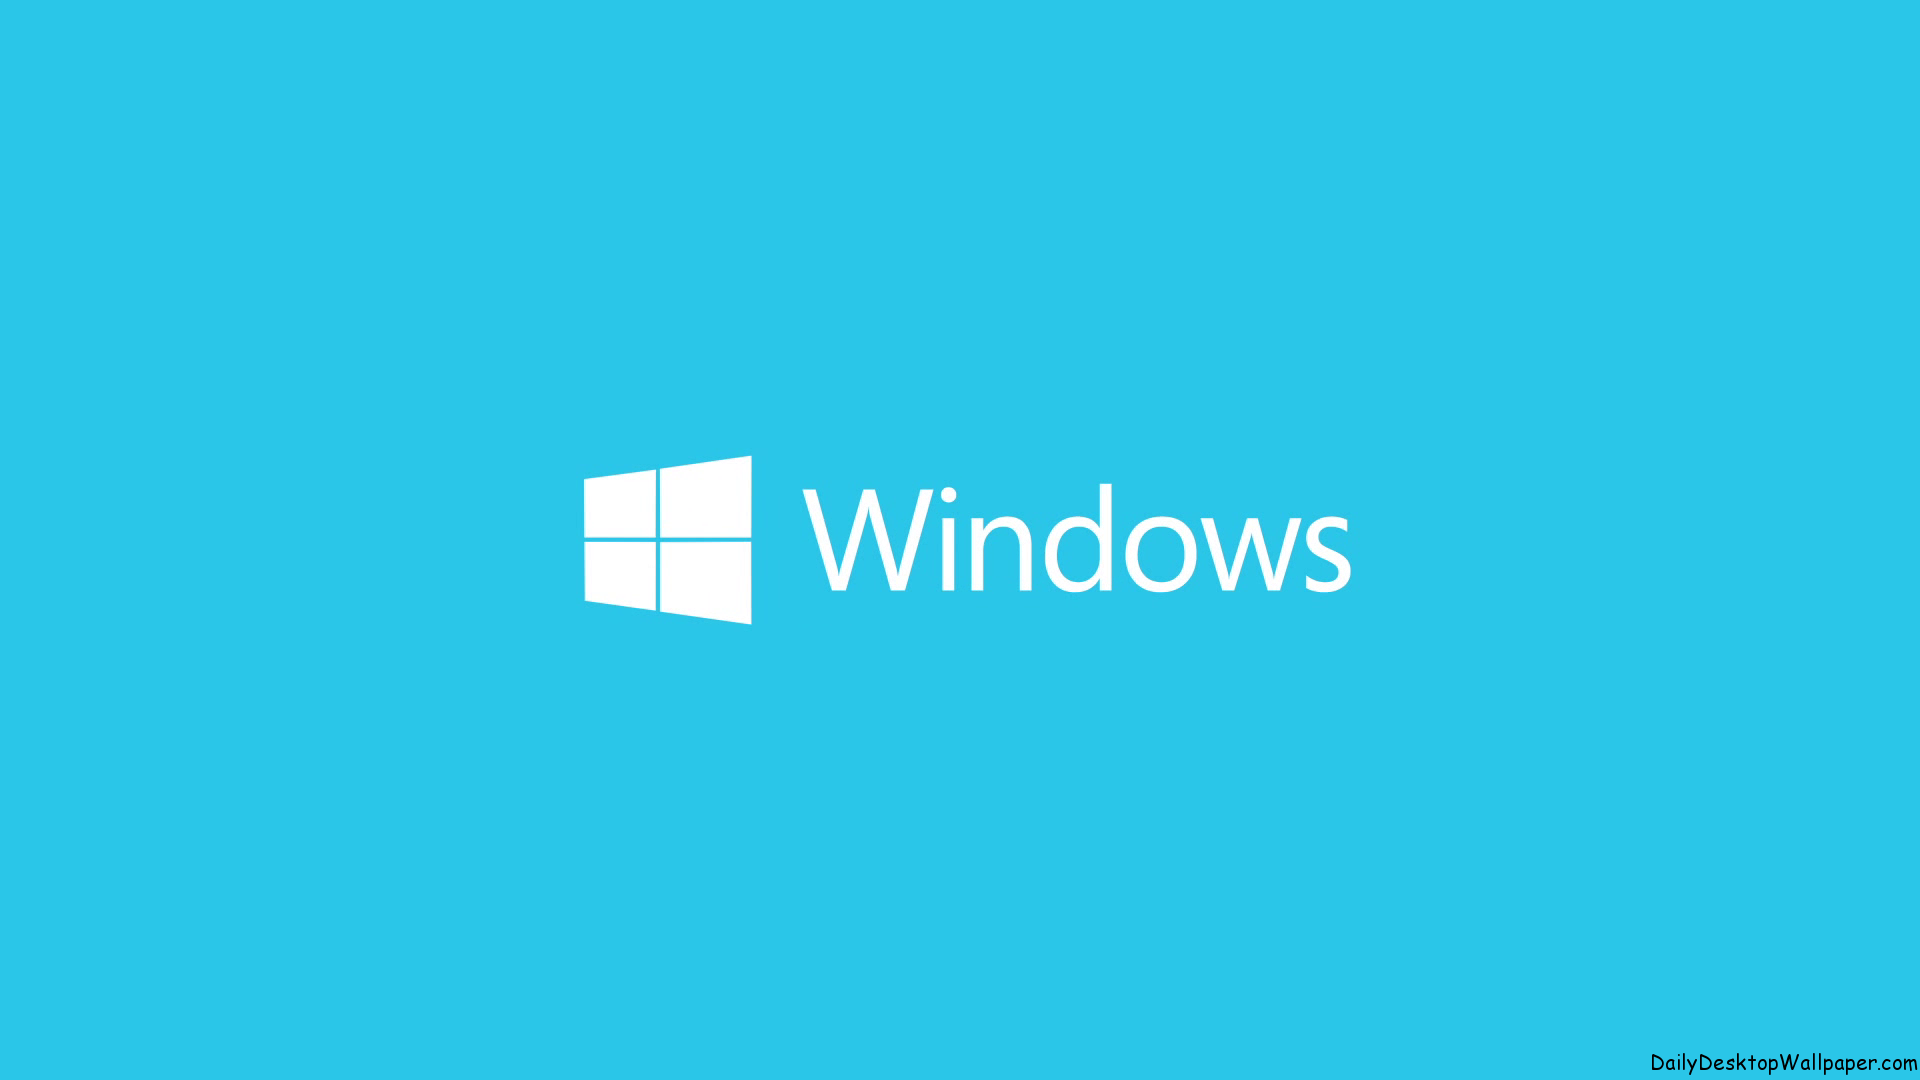 Watching Windows Hd Wallpapers